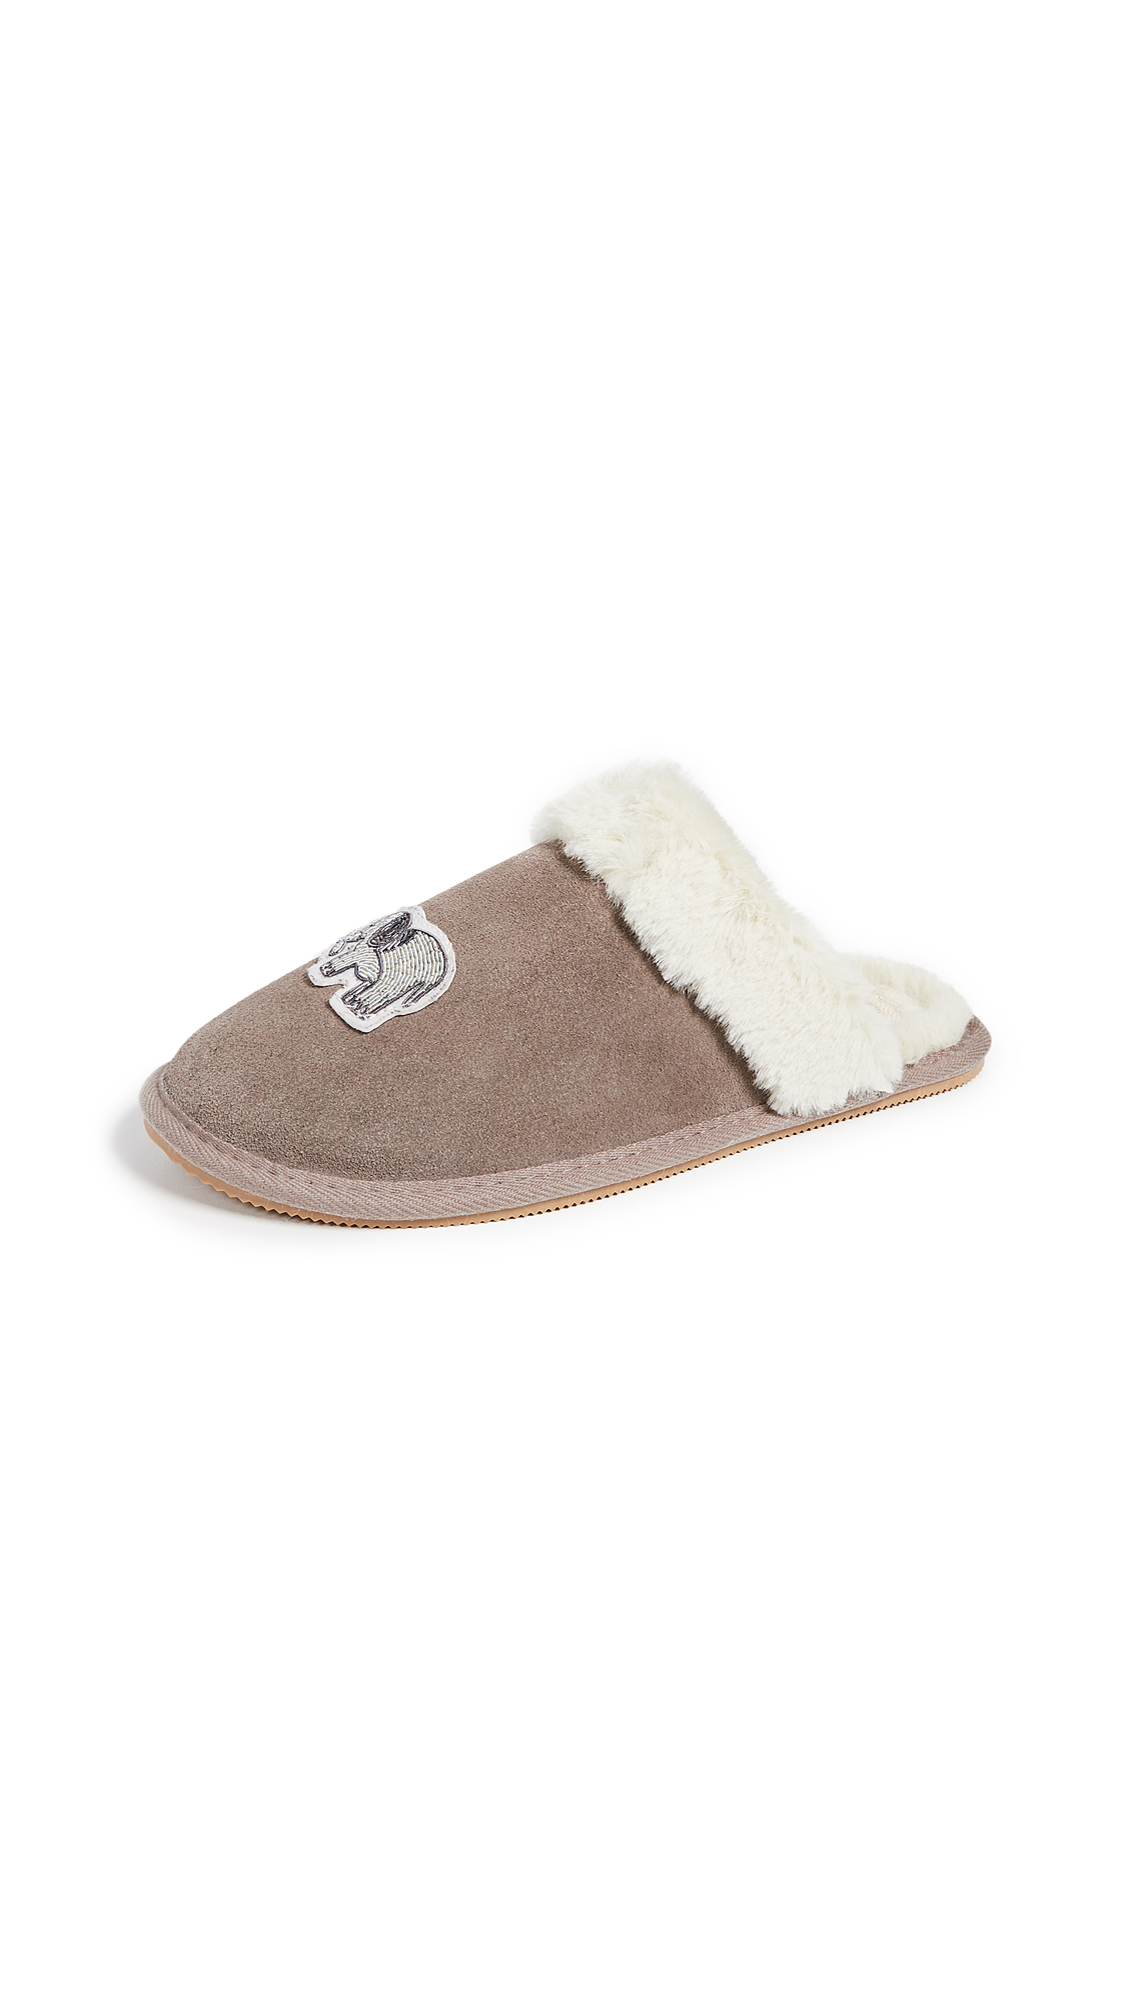 Soludos Elephant Cozy Slippers - Mineral Grey